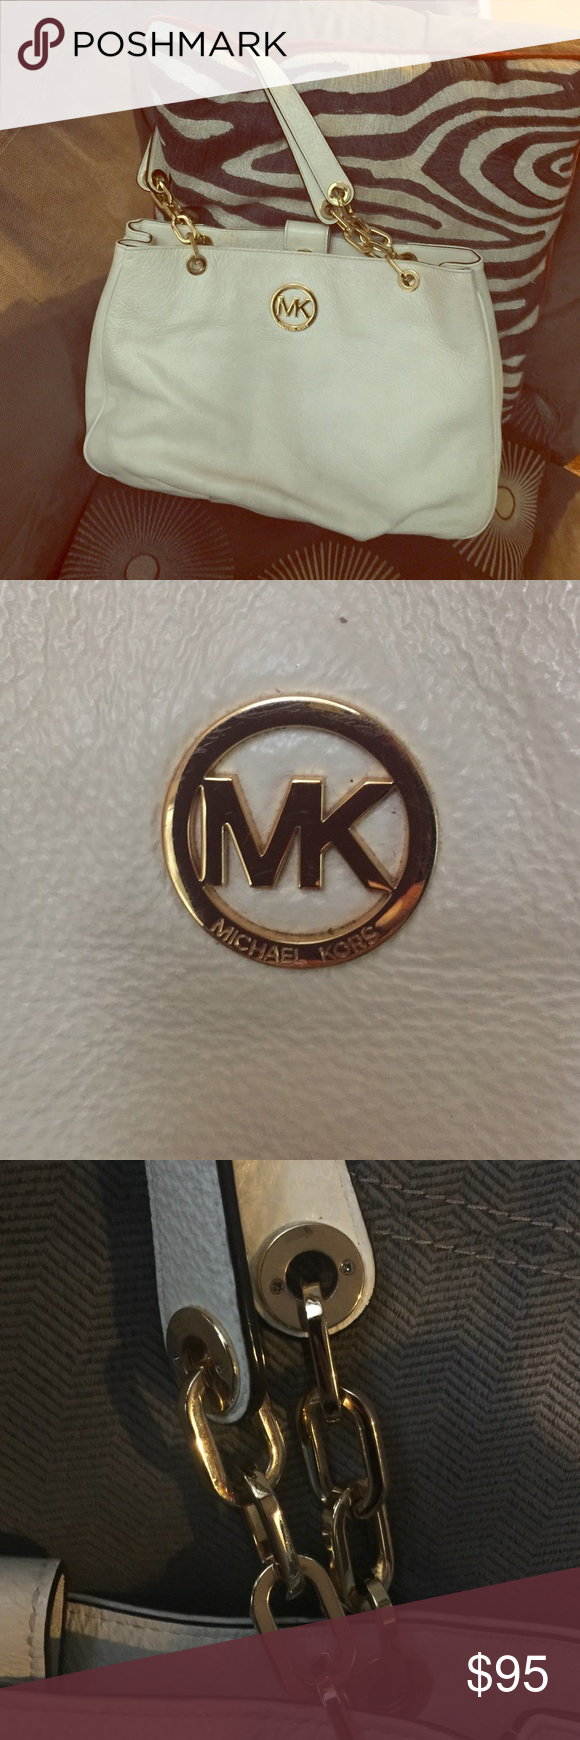 Authentic Michael Kors leather tote w/ gold accent Great condition. Lots of pockets. Stunning bag Michael Kors Bags Totes